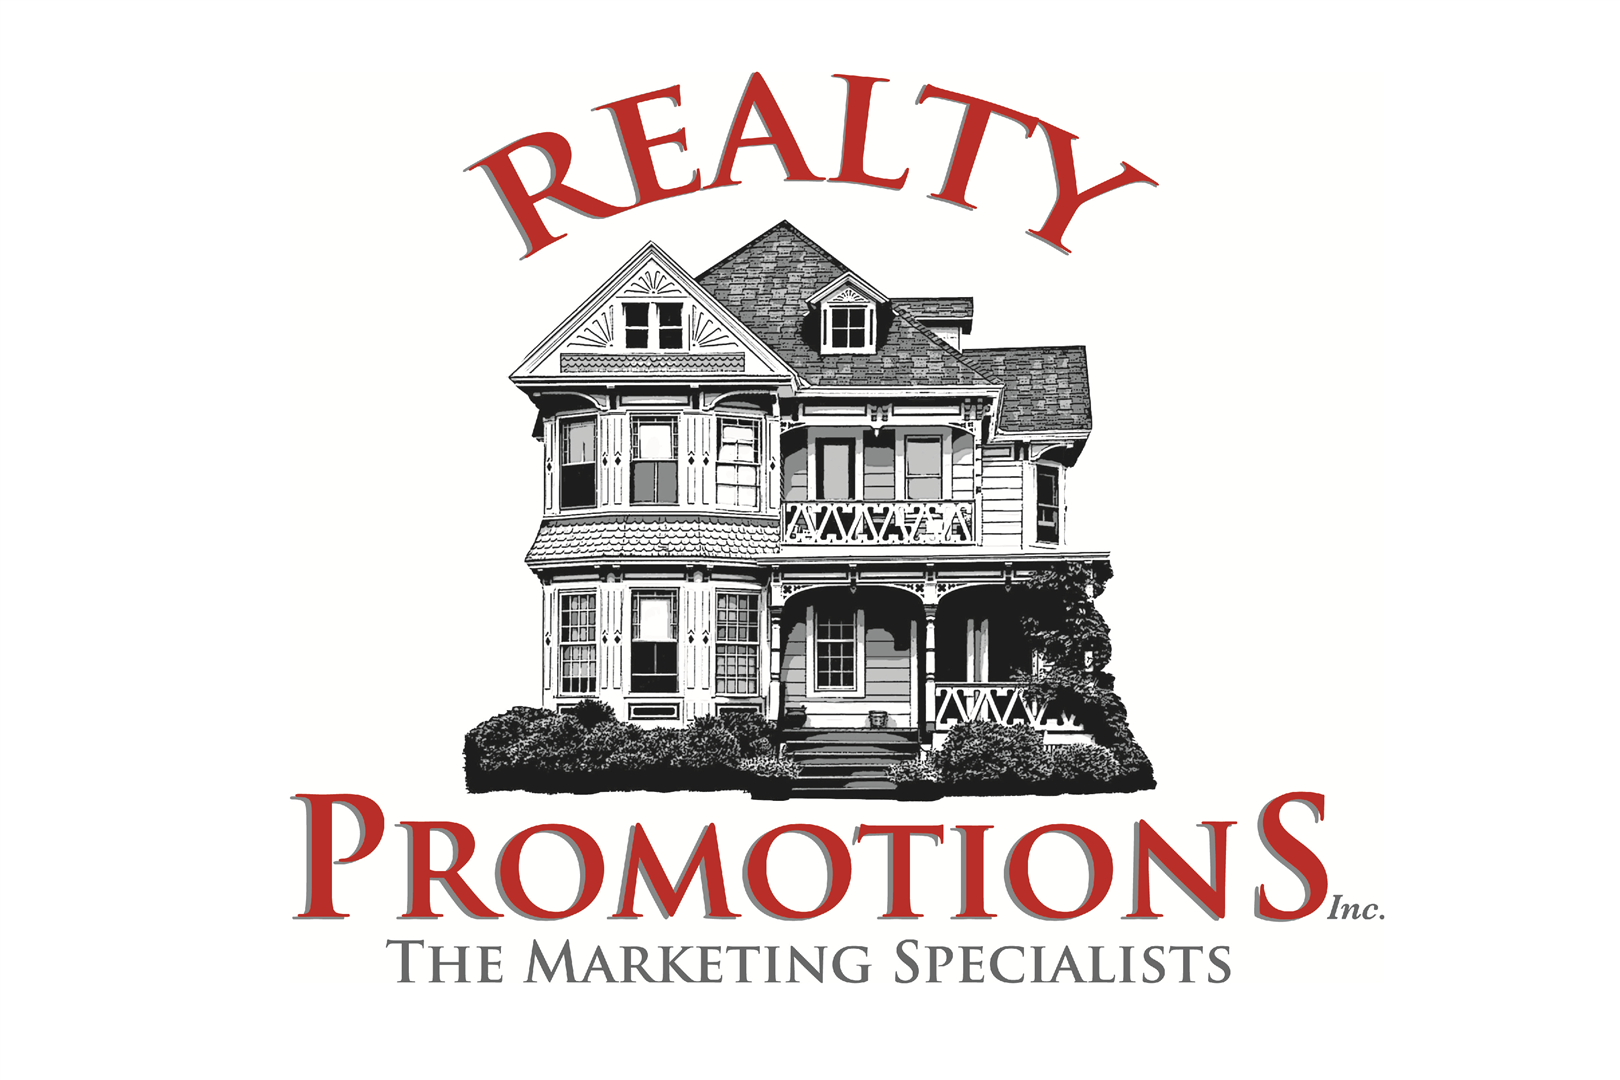 Realty Promotions